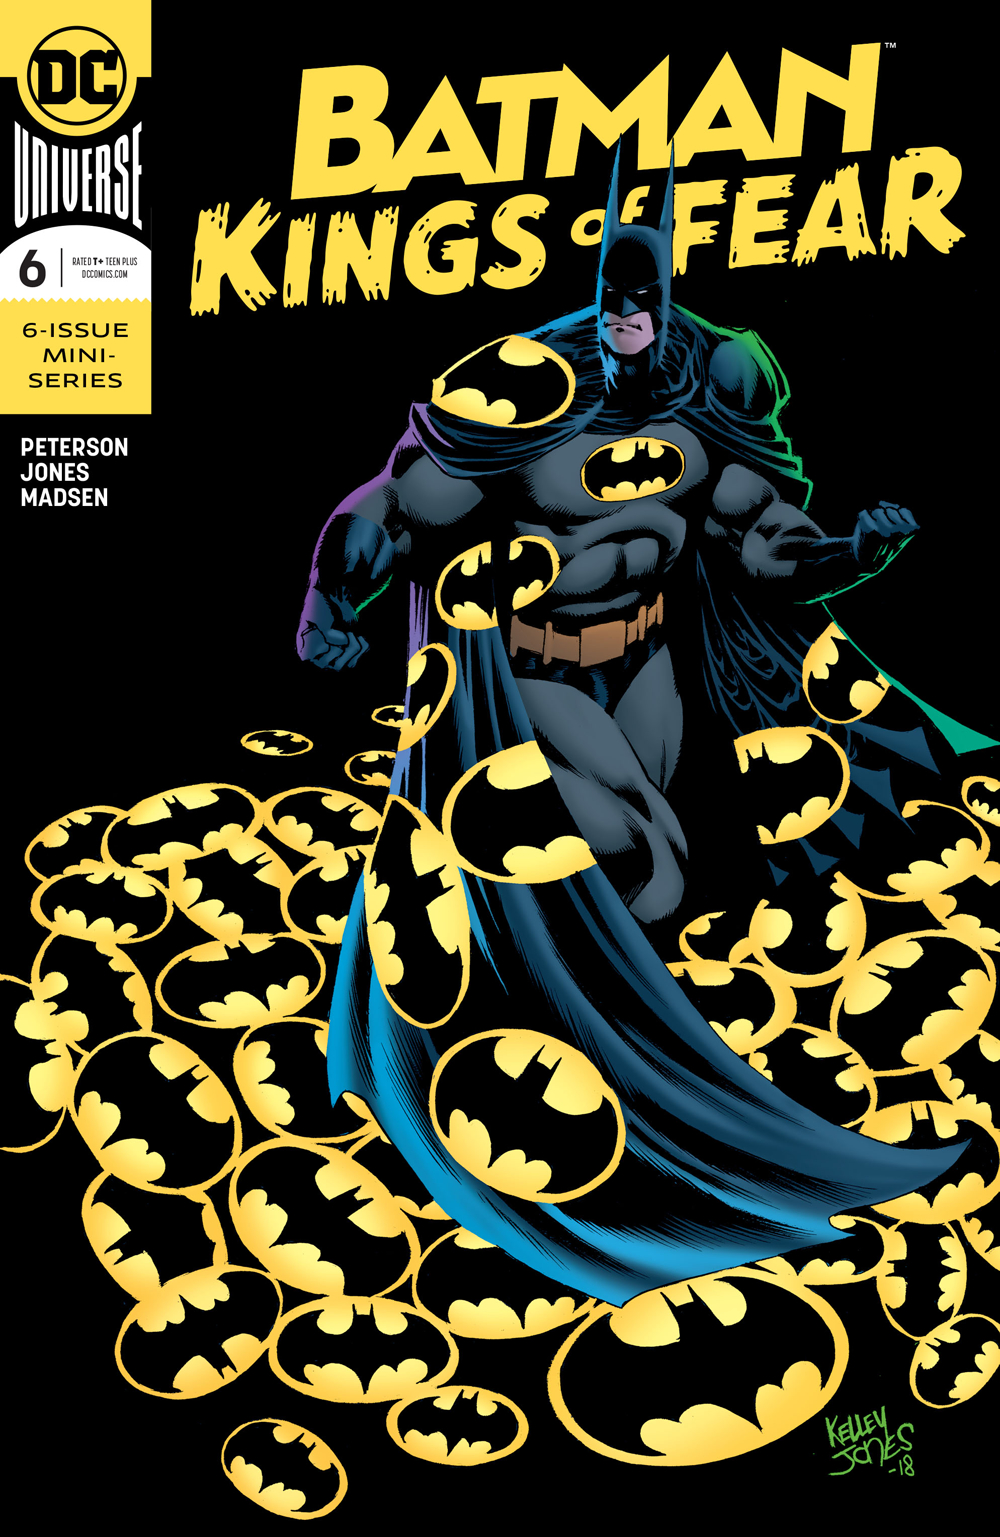 BATMAN KINGS OF FEAR #6 (OF 6)